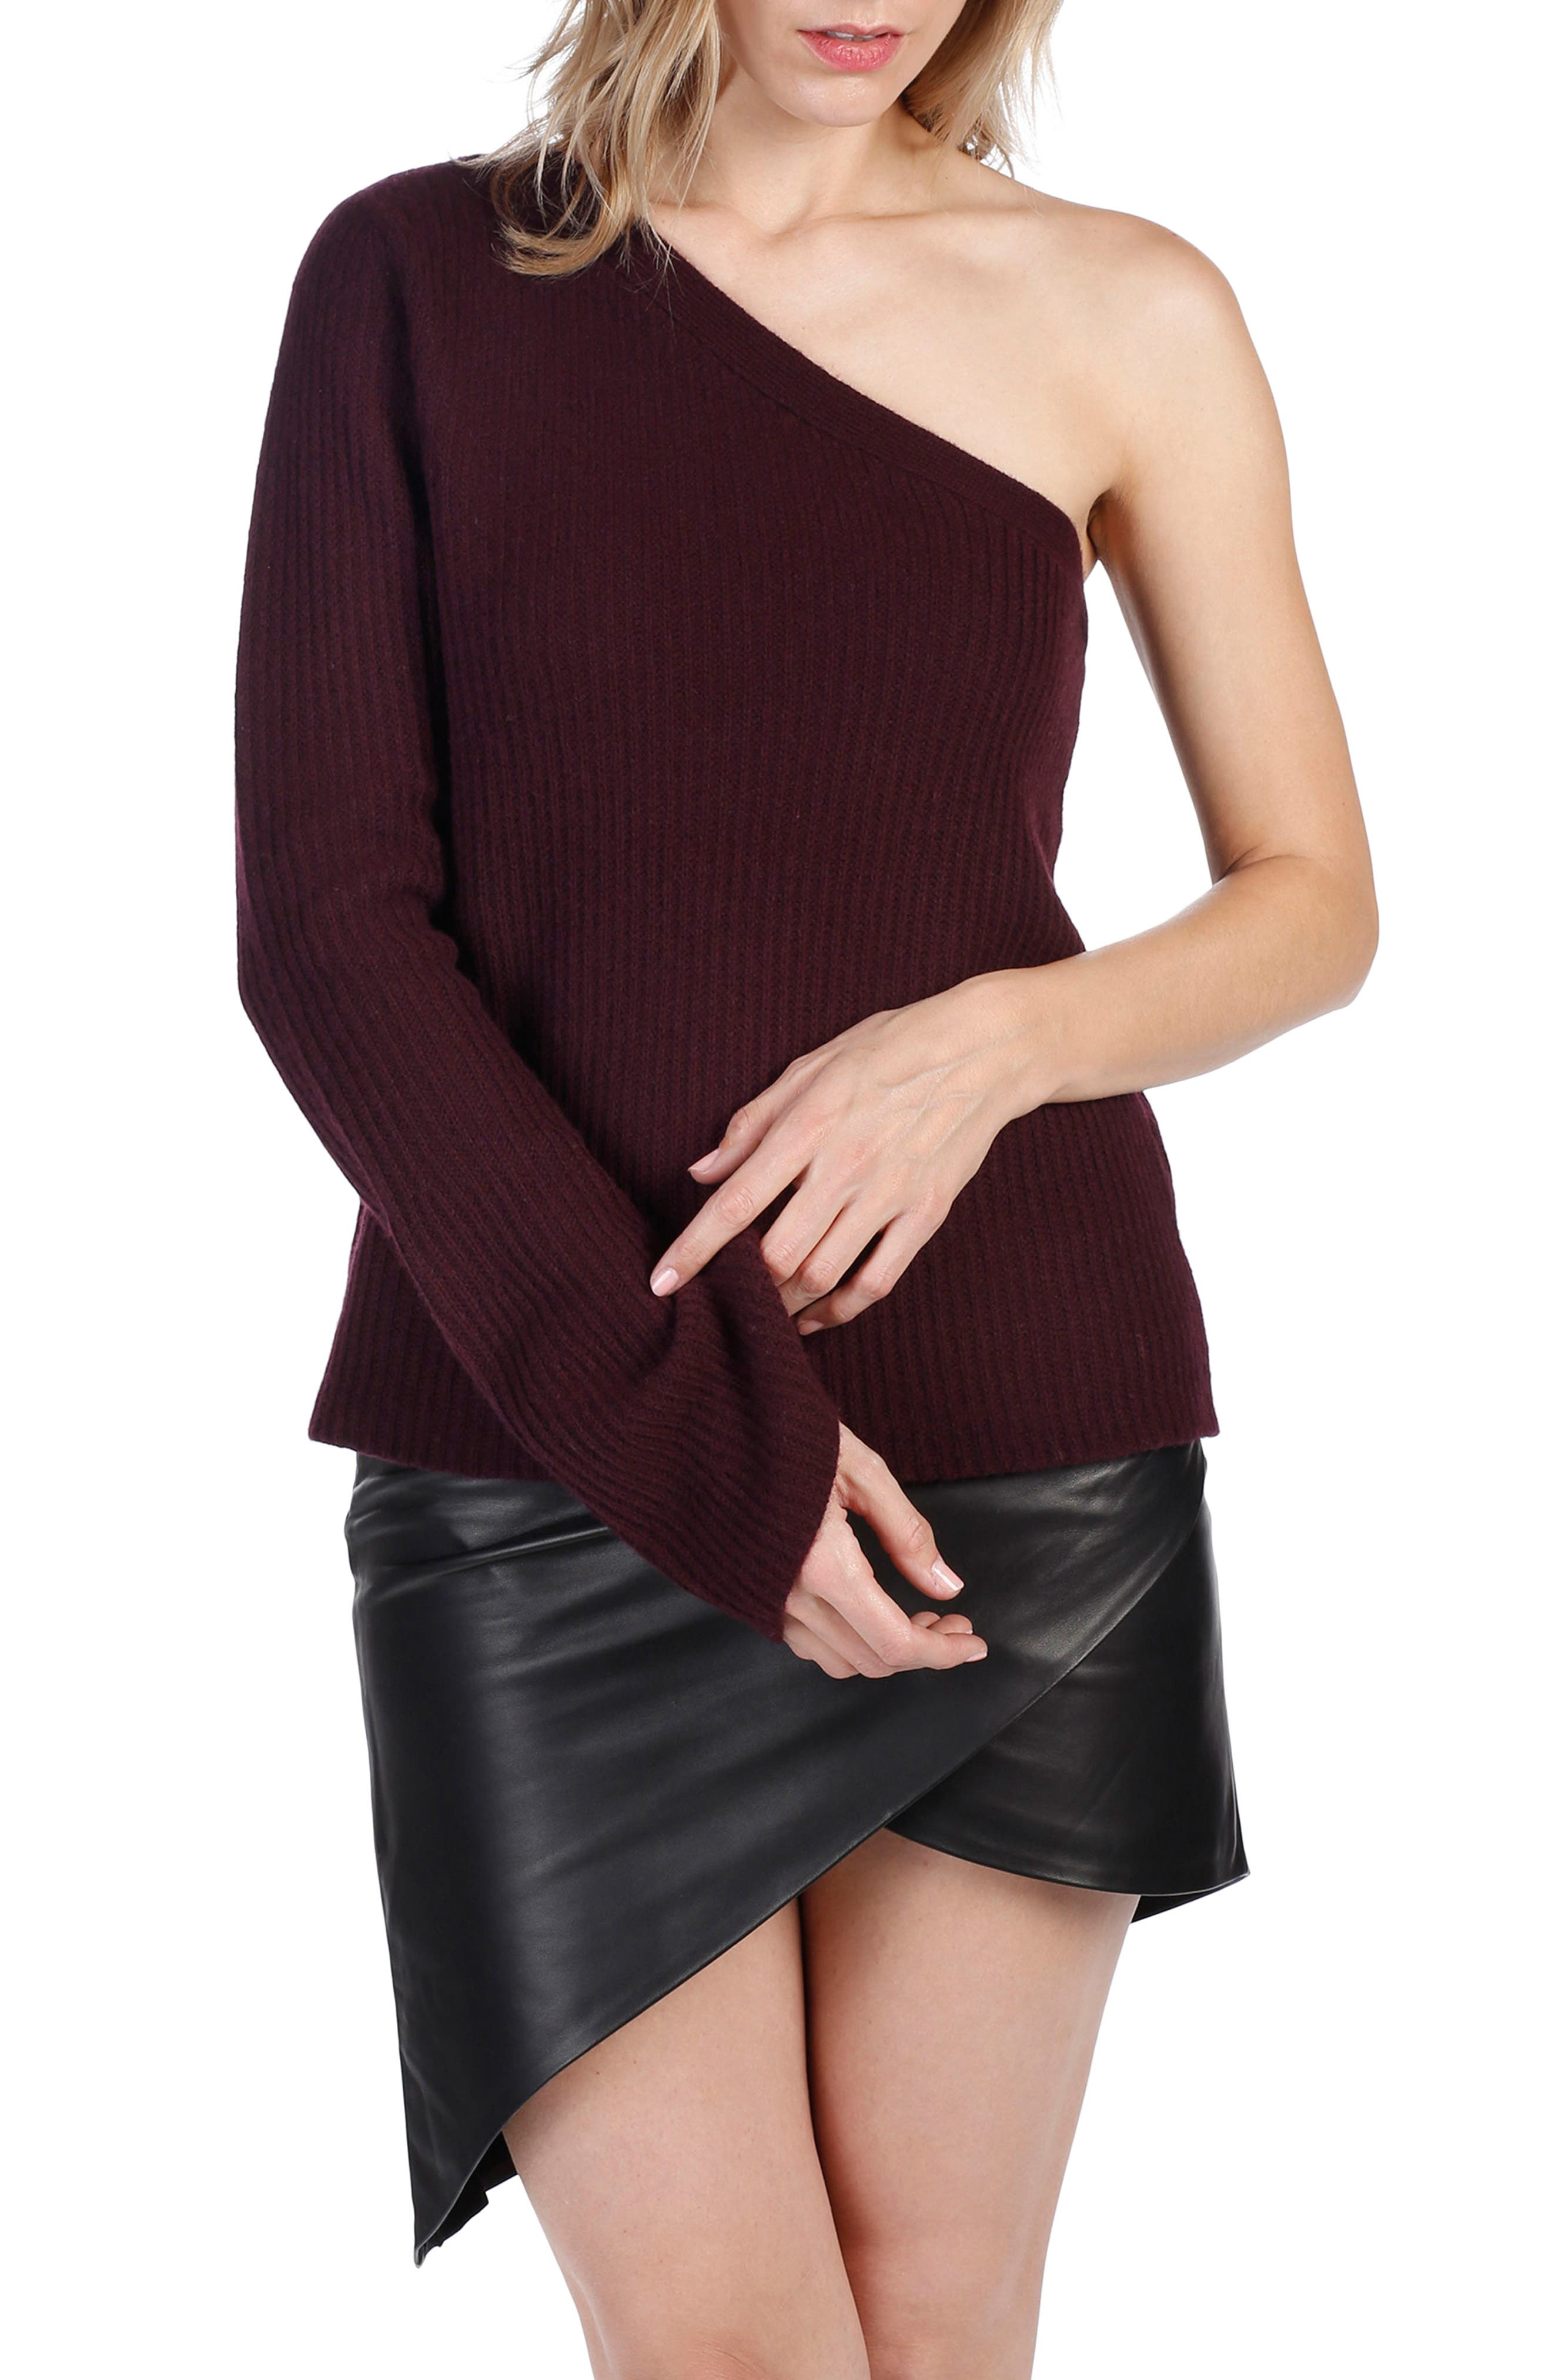 Rosie HW x PAIGE Hadlee One-Shoulder Sweater,                             Main thumbnail 1, color,                             Black Cherry